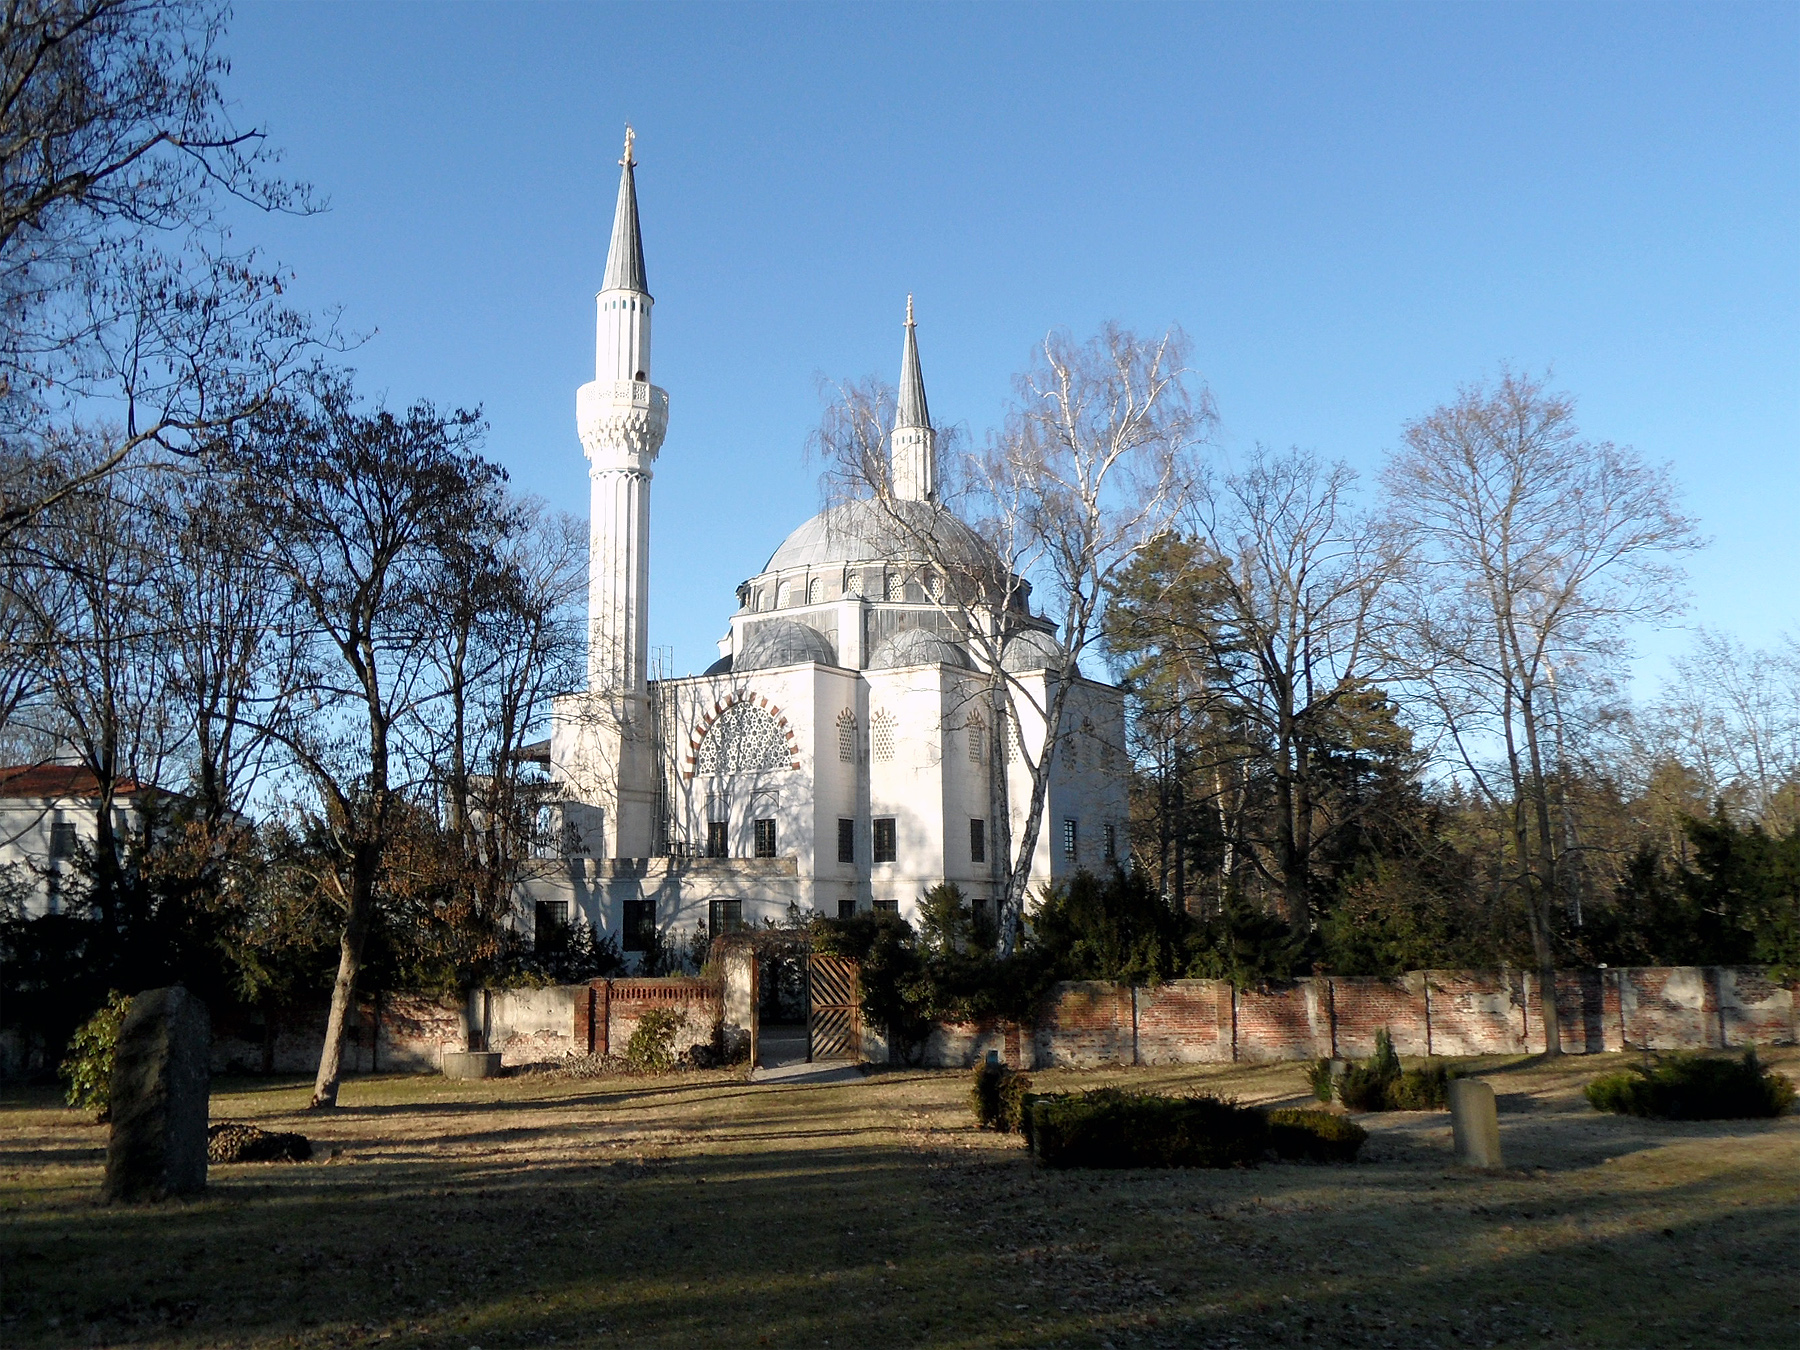 Sehitlik moschee 2 c onnola flickr cc by sa 2 0